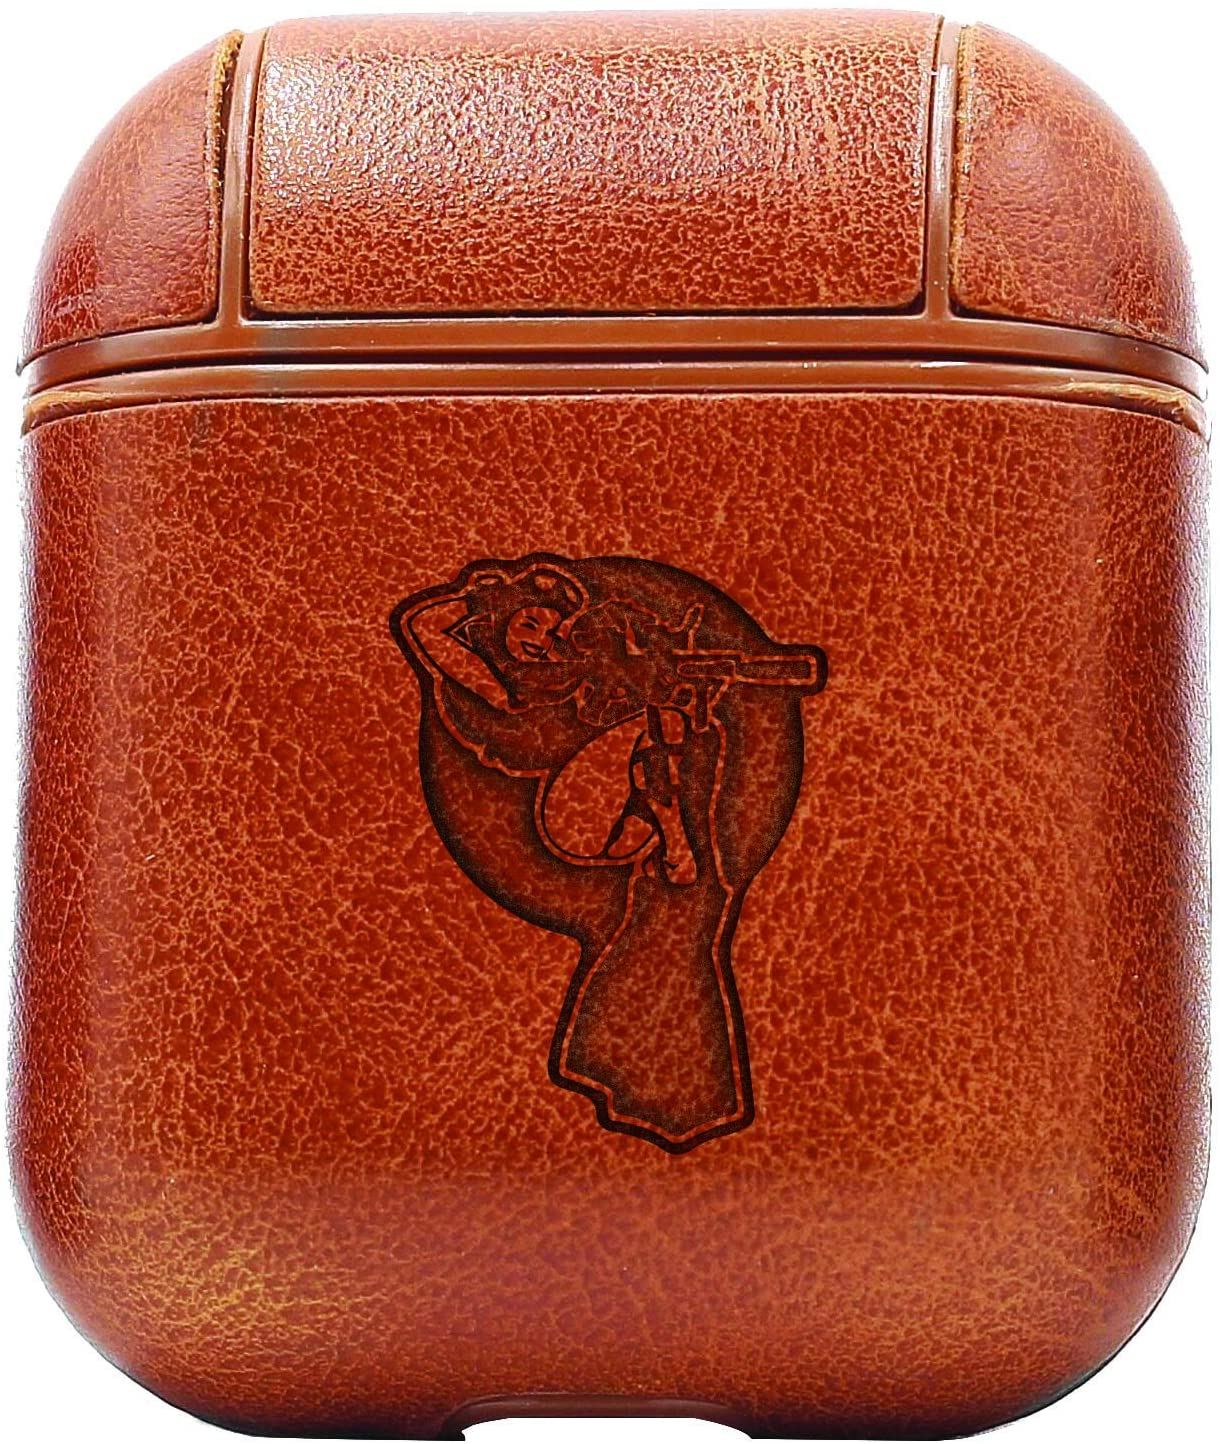 Dive Girl (Vintage Brown) Air Pods Protective Leather Case Cover - A New Class of Luxury to Your Airpods - Premium Pu Leather and Handmade Exquisitely by Master Craftsmen